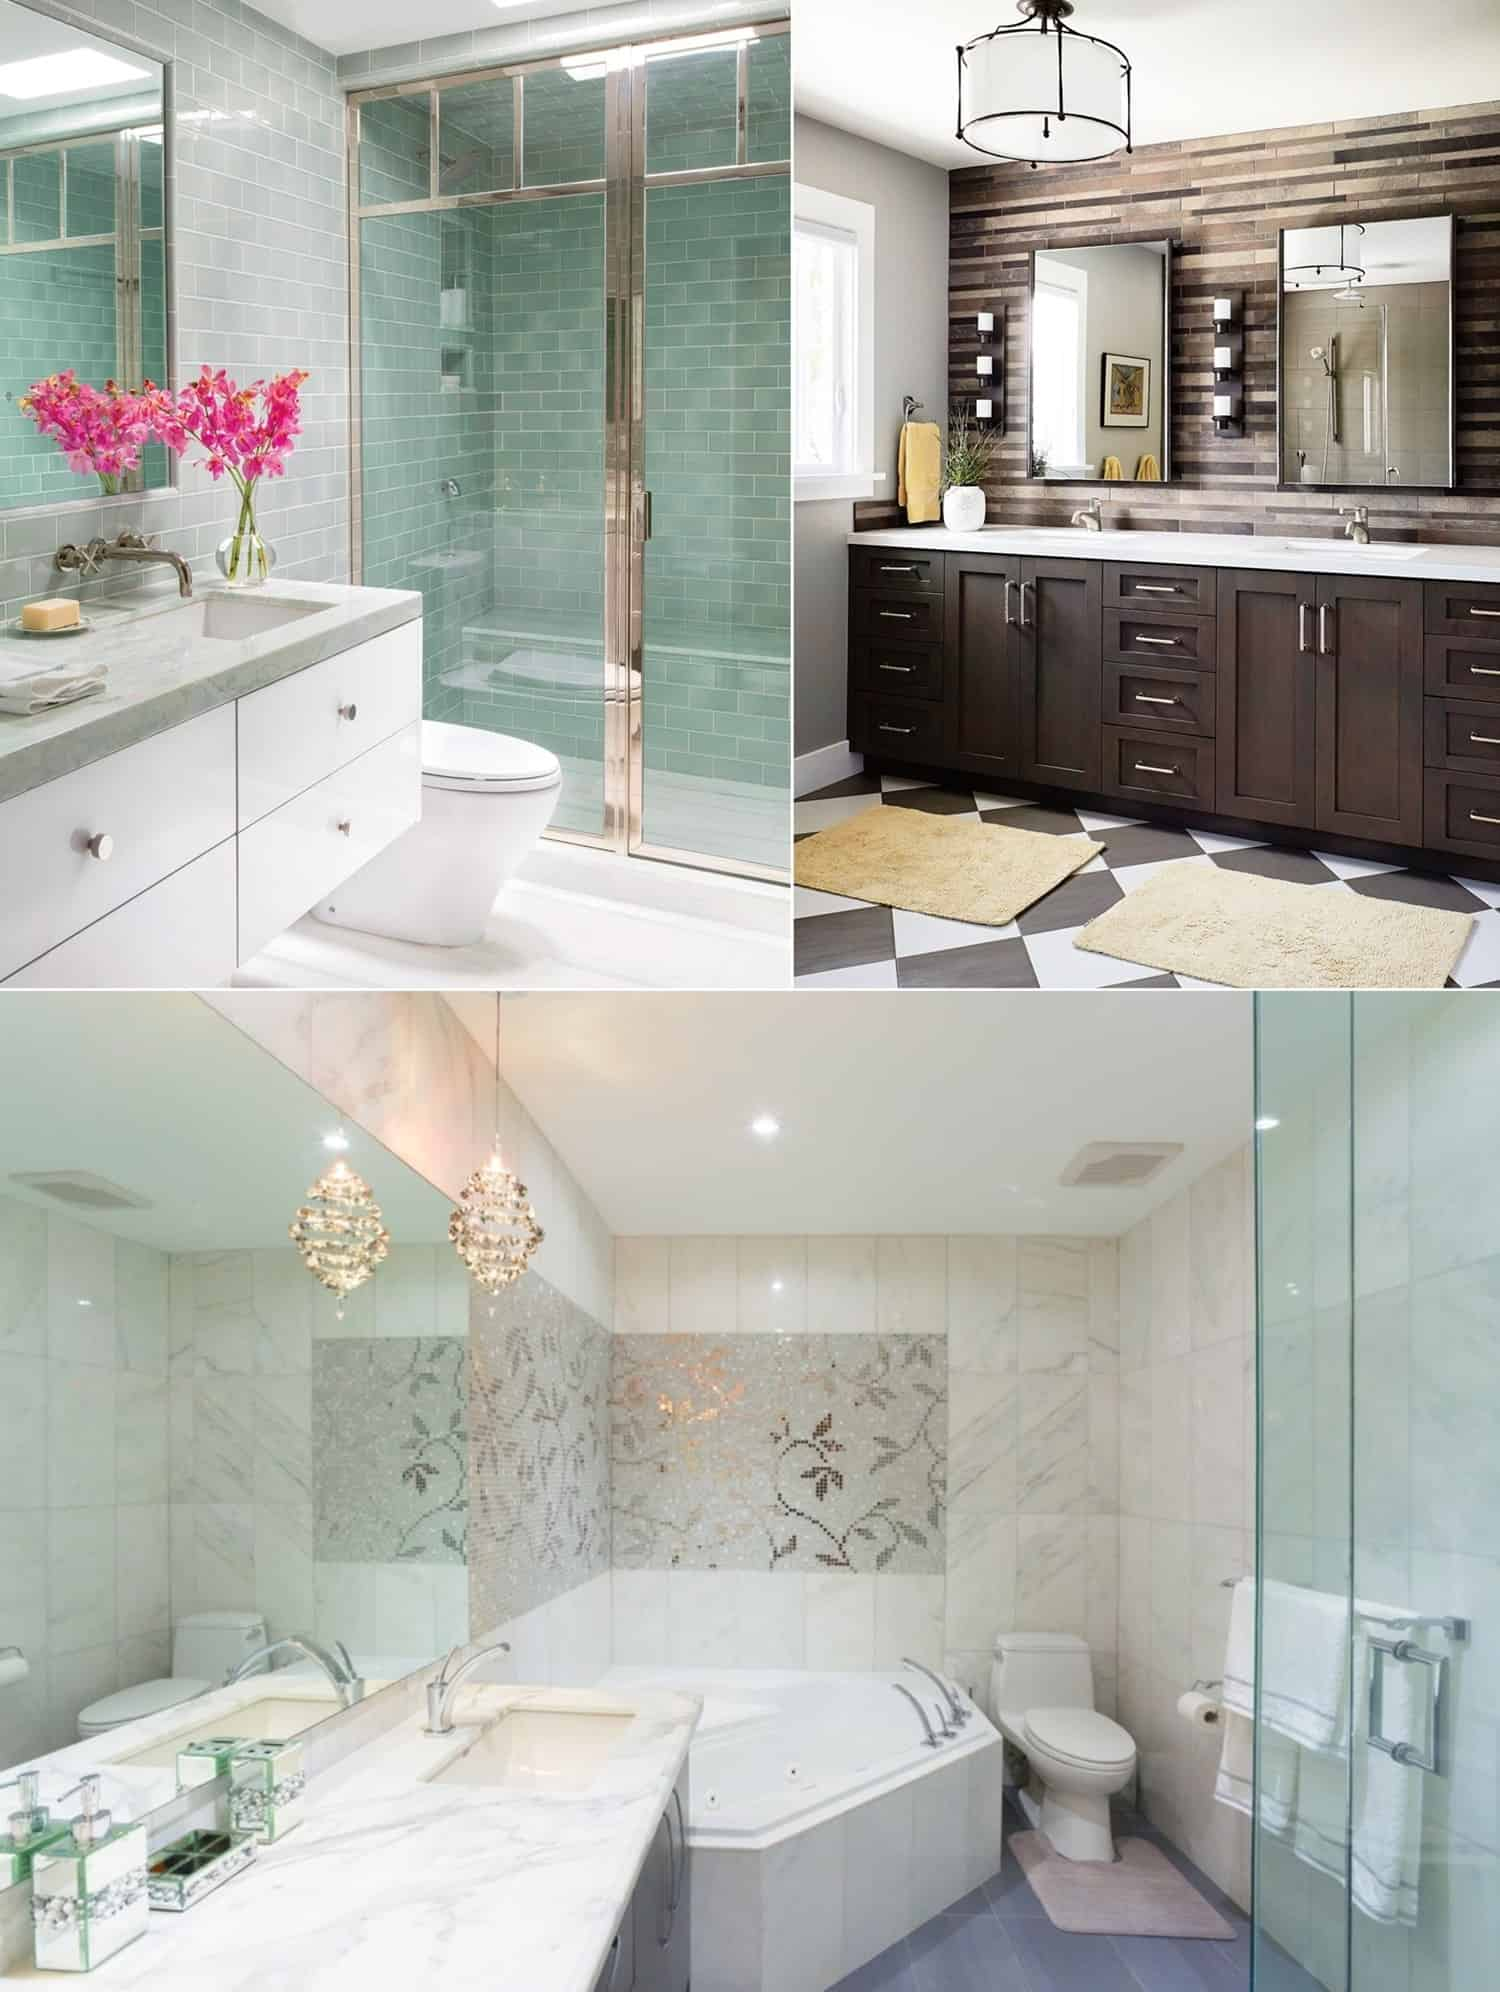 CHOOSE THE RIGHT TYPE OF TILES